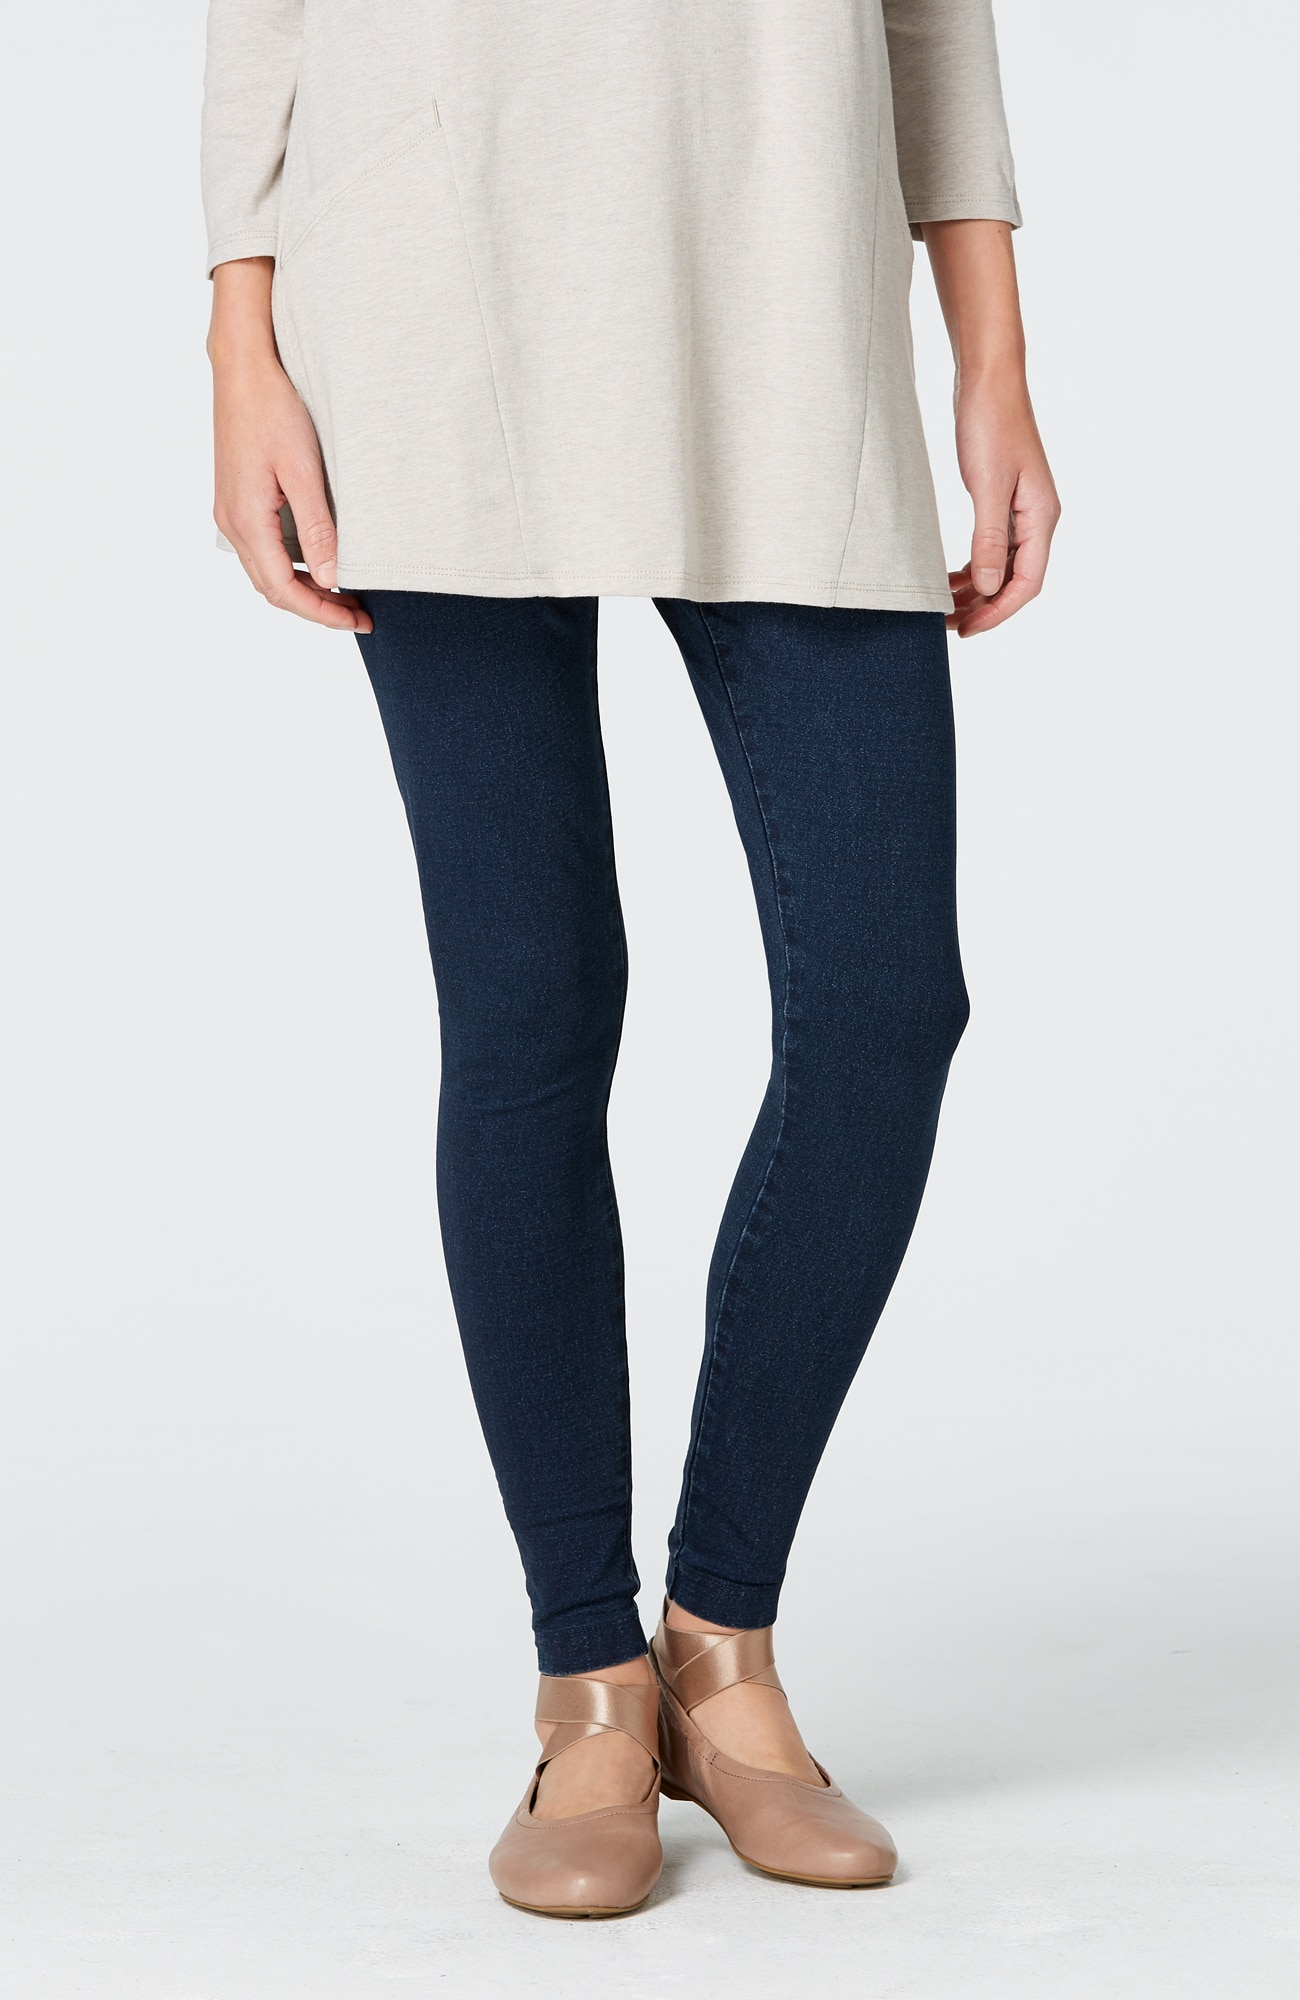 Pure Jill indigo knit leggings